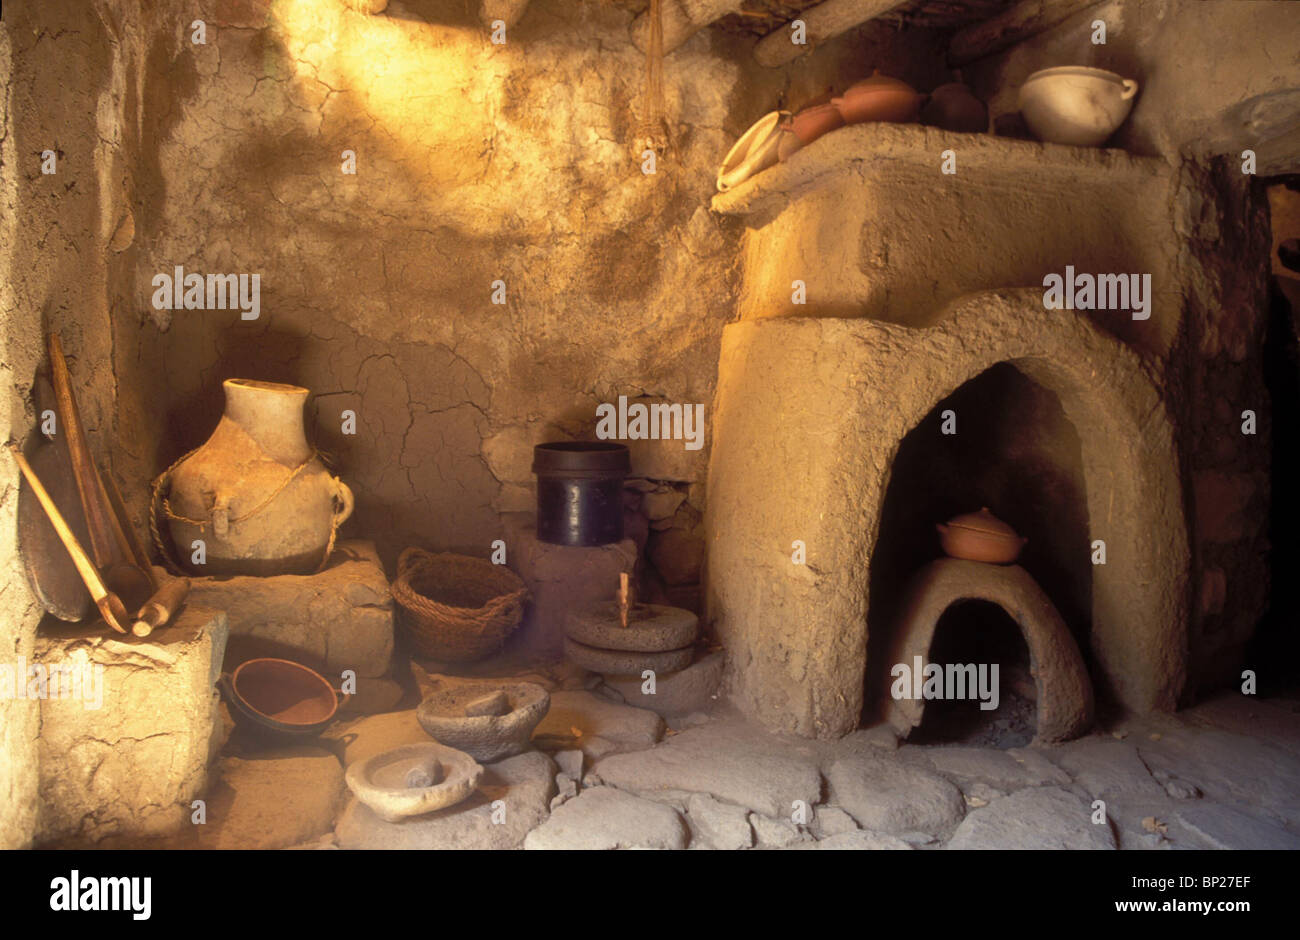 1700. RECONSTRUCTION OF A RURAL HOUSE IN NORTHERN ISRAEL. C. 4TH. C. AD - Stock Image